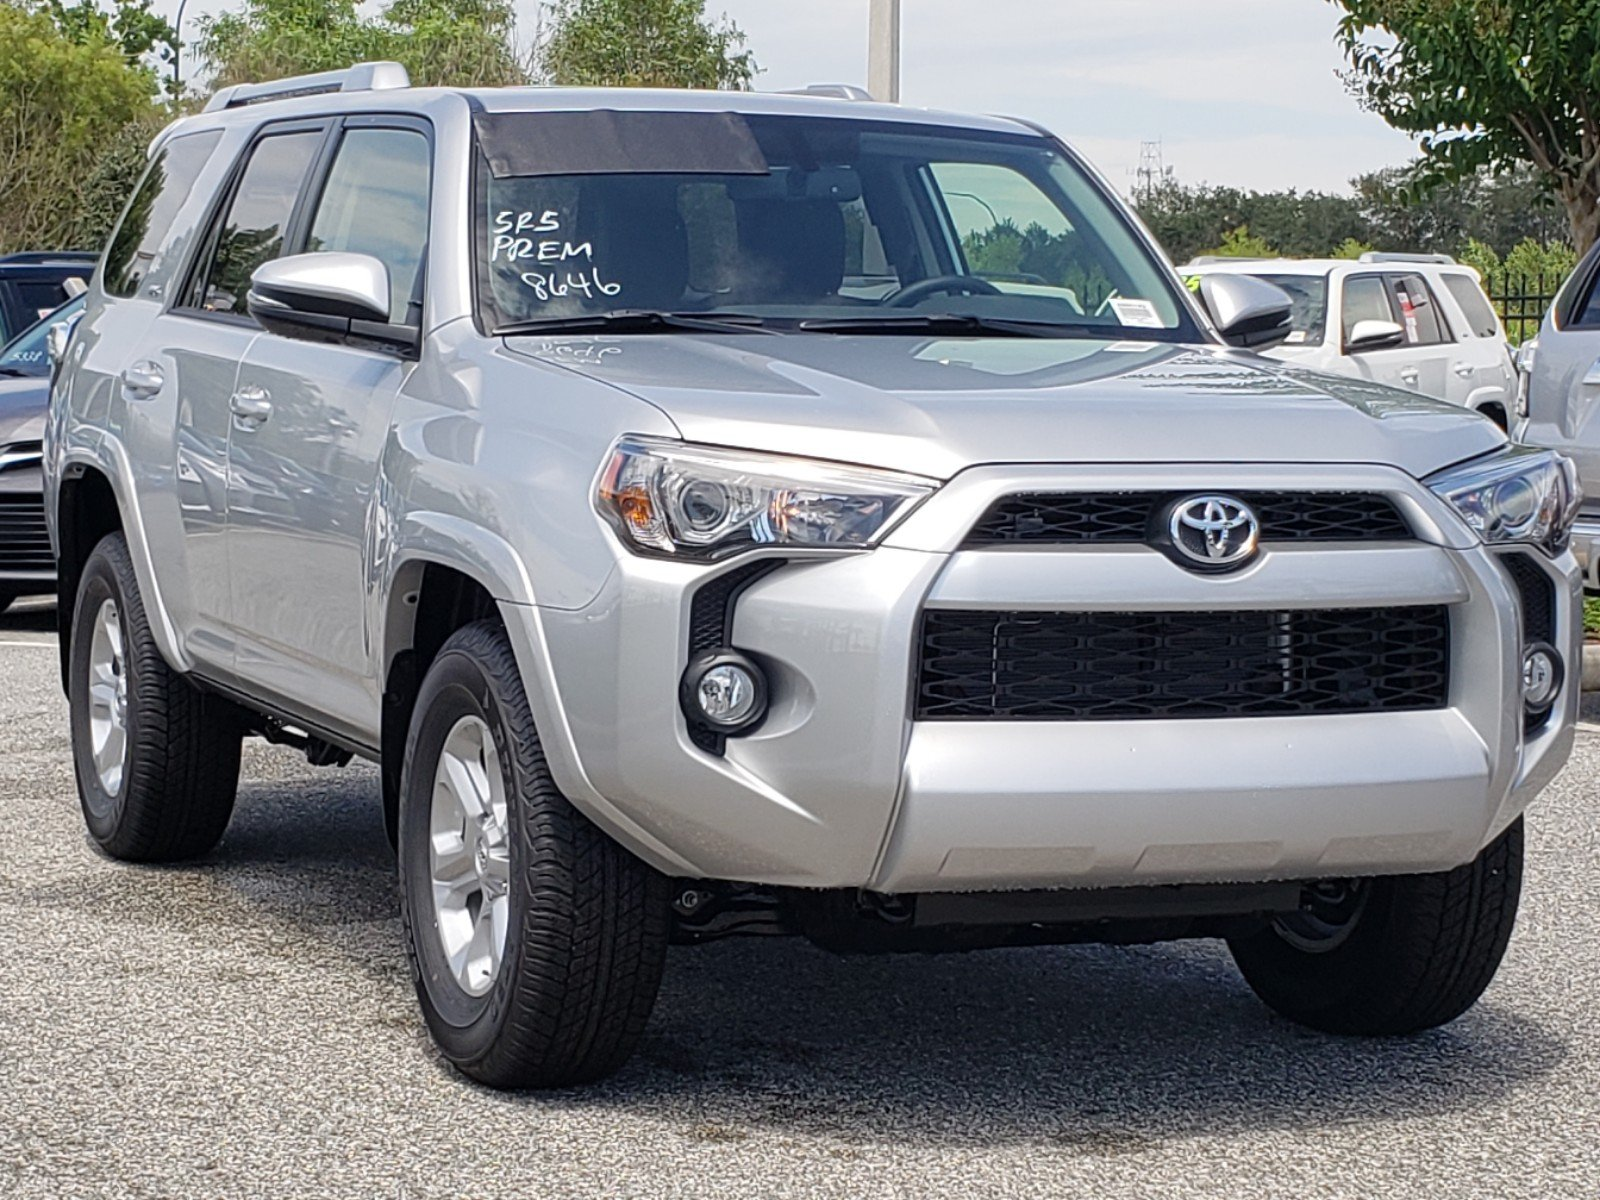 ef3bcc1151965cda04a48b8bc1908f1c Great Description About Used toyota 4runner for Sale